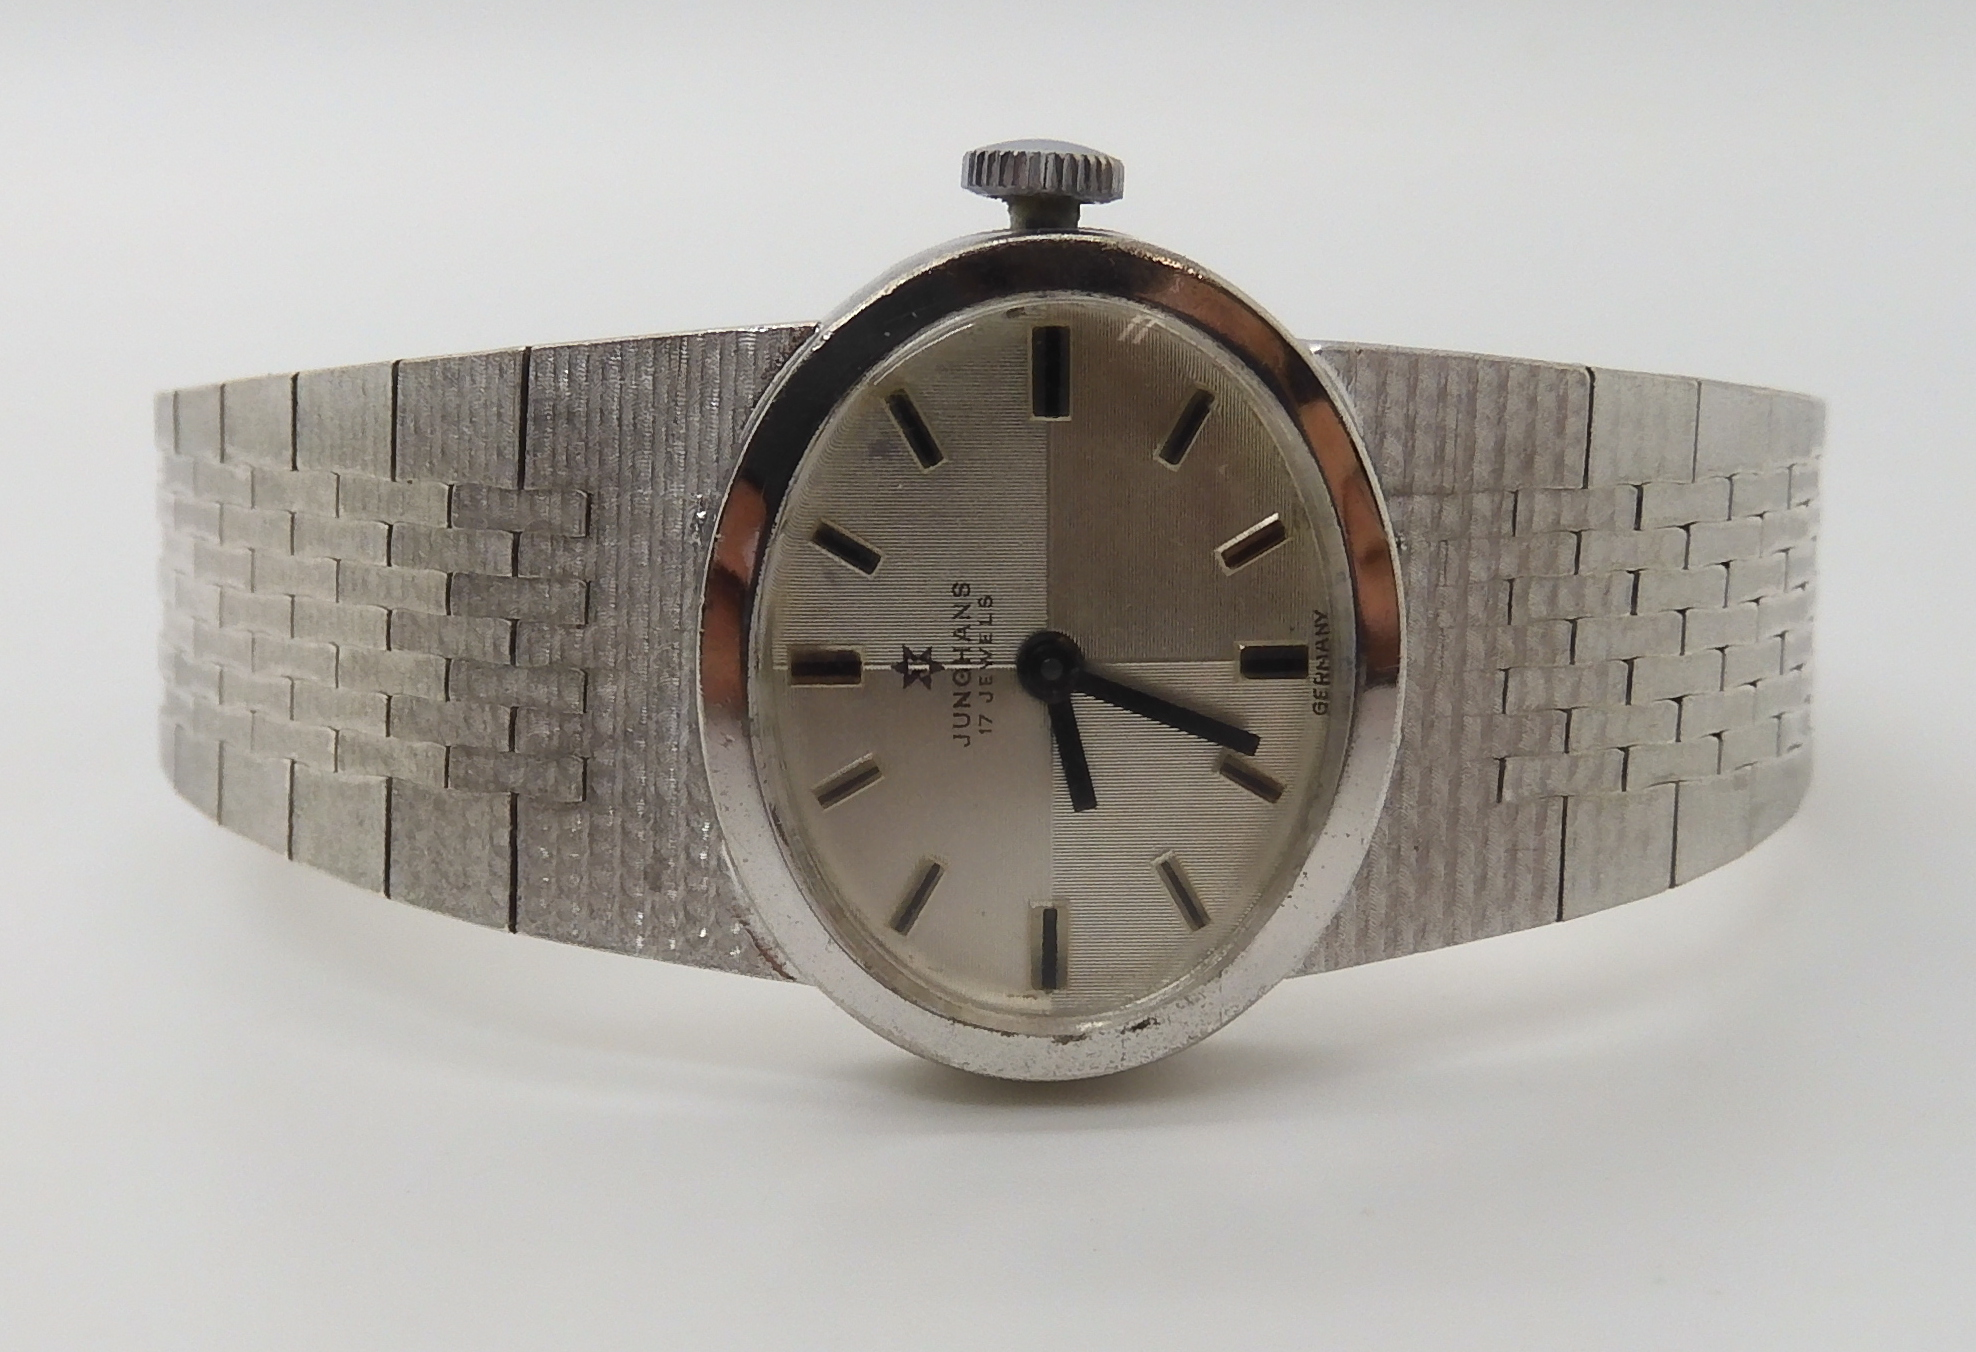 Lot 768 - A ladies silver Junghans watch Condition Report: Not available for this lot